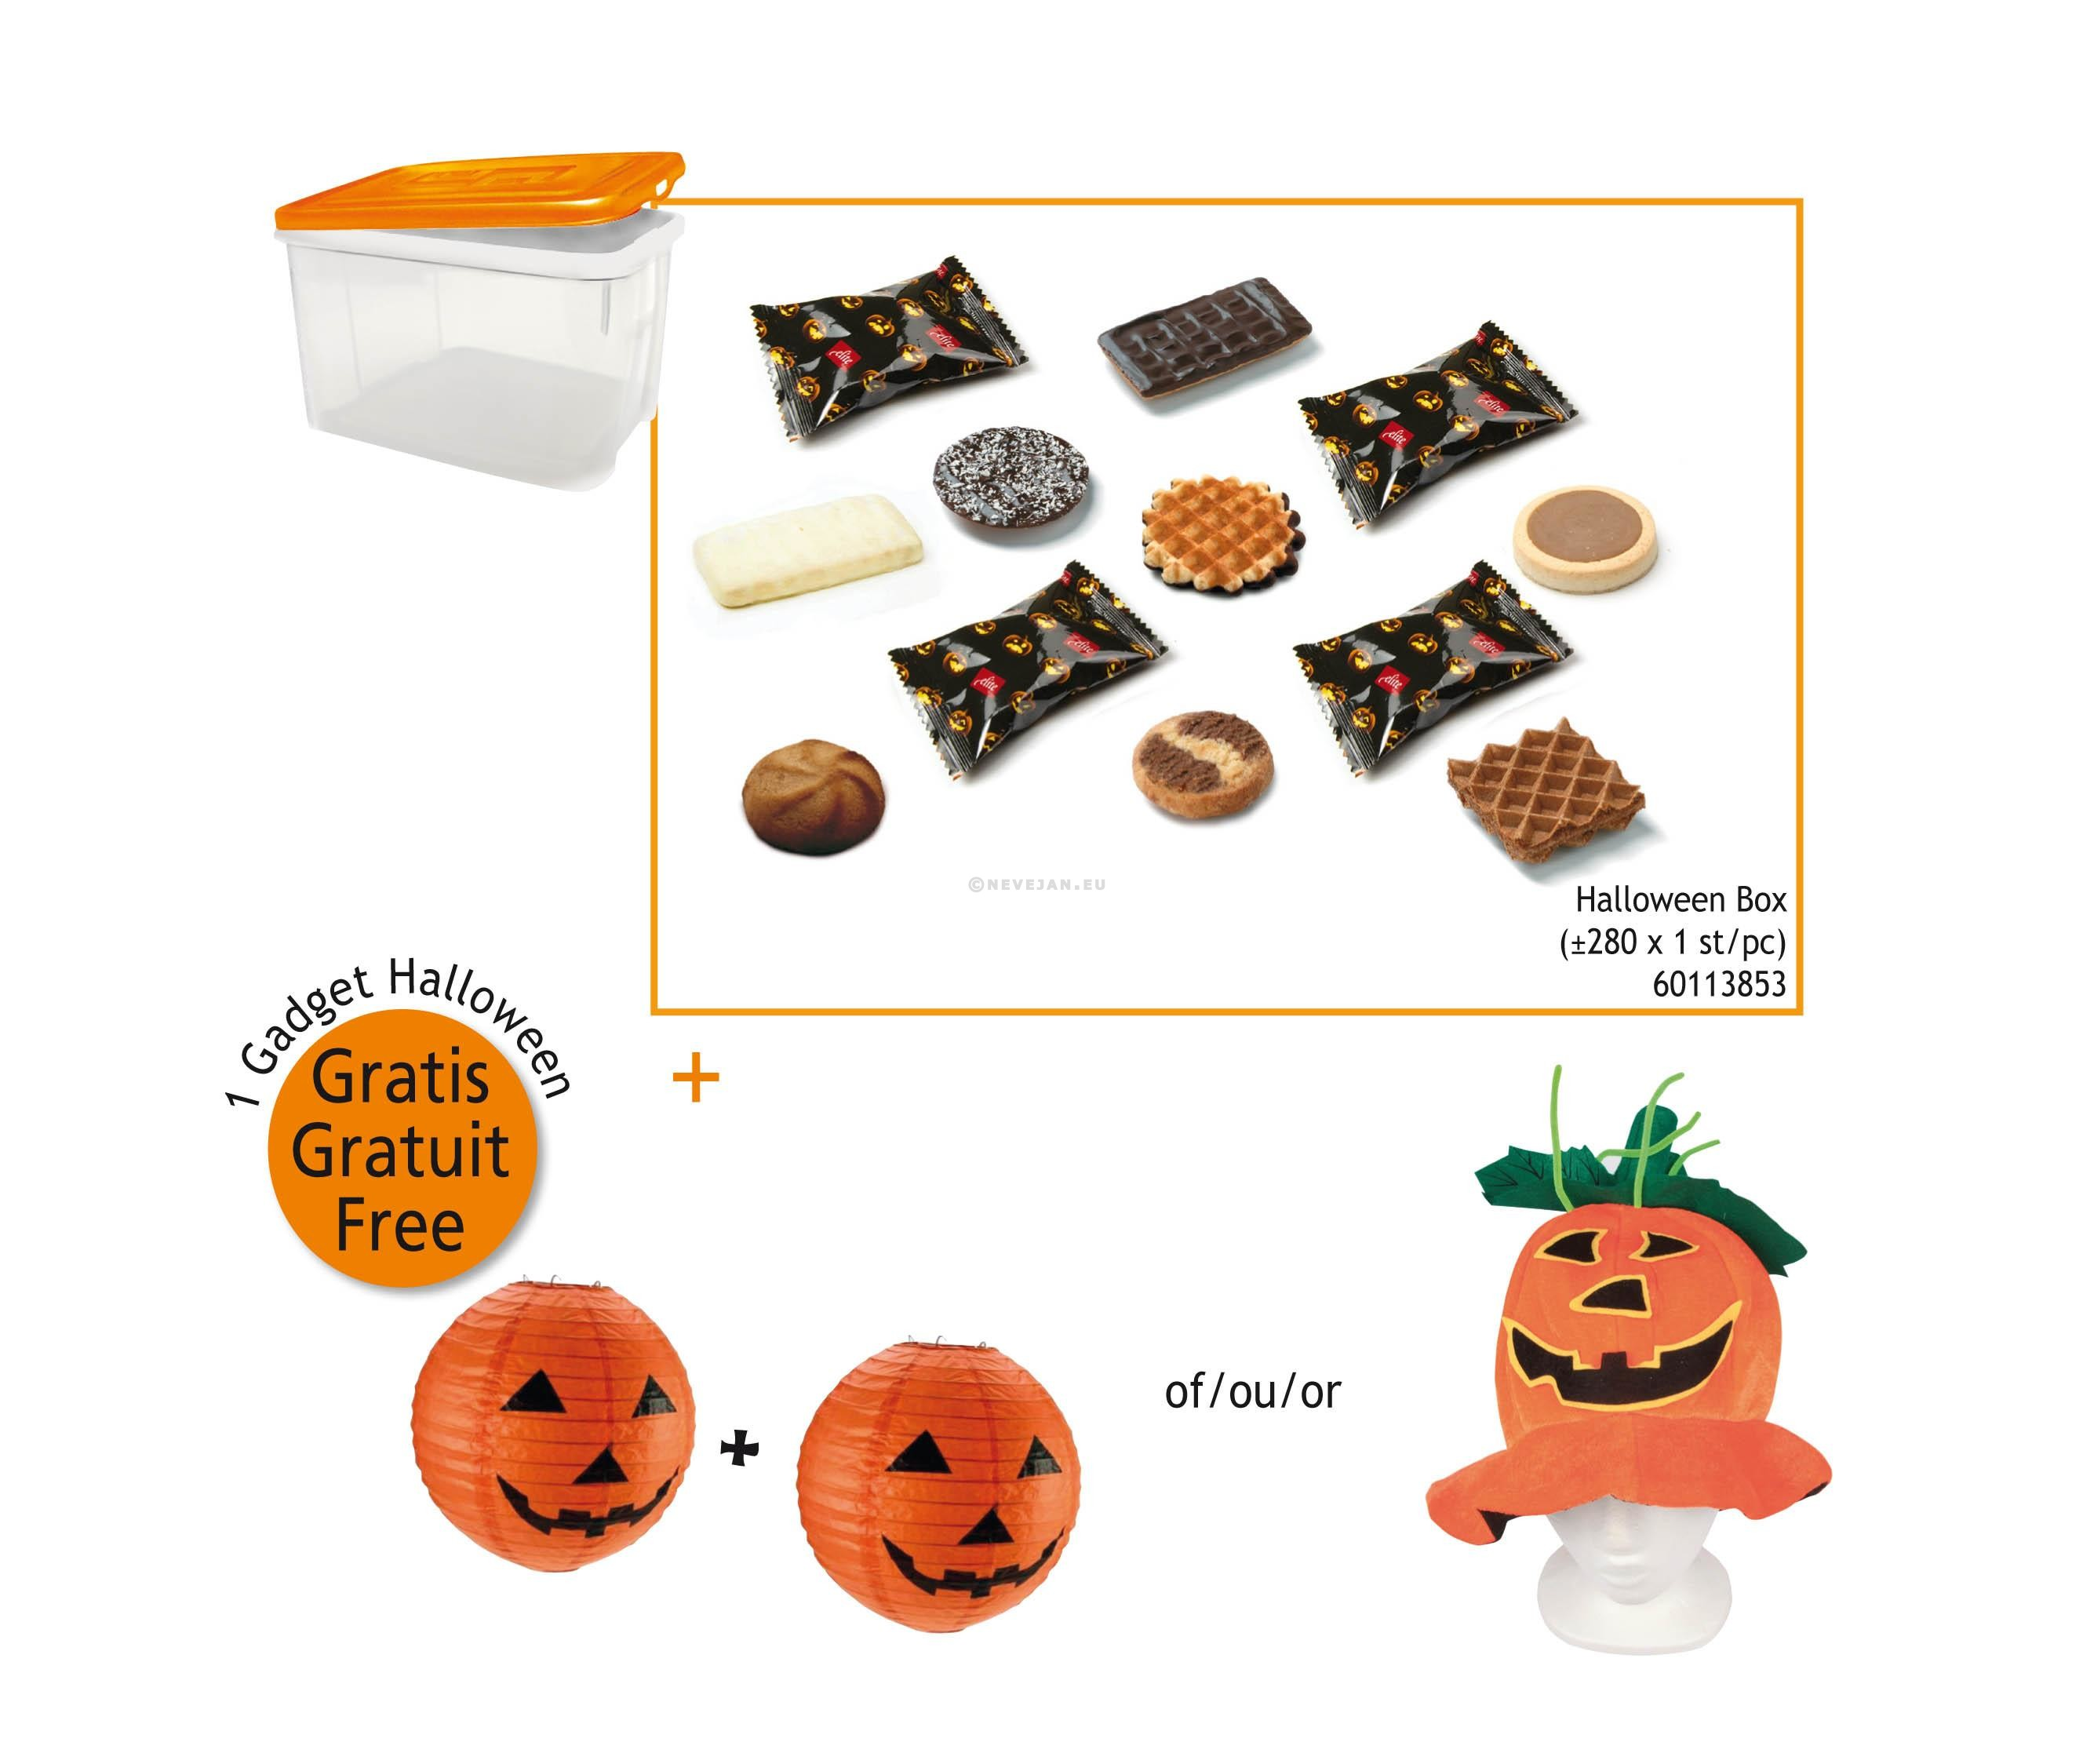 Elite Biscuits Halloween 280pc box